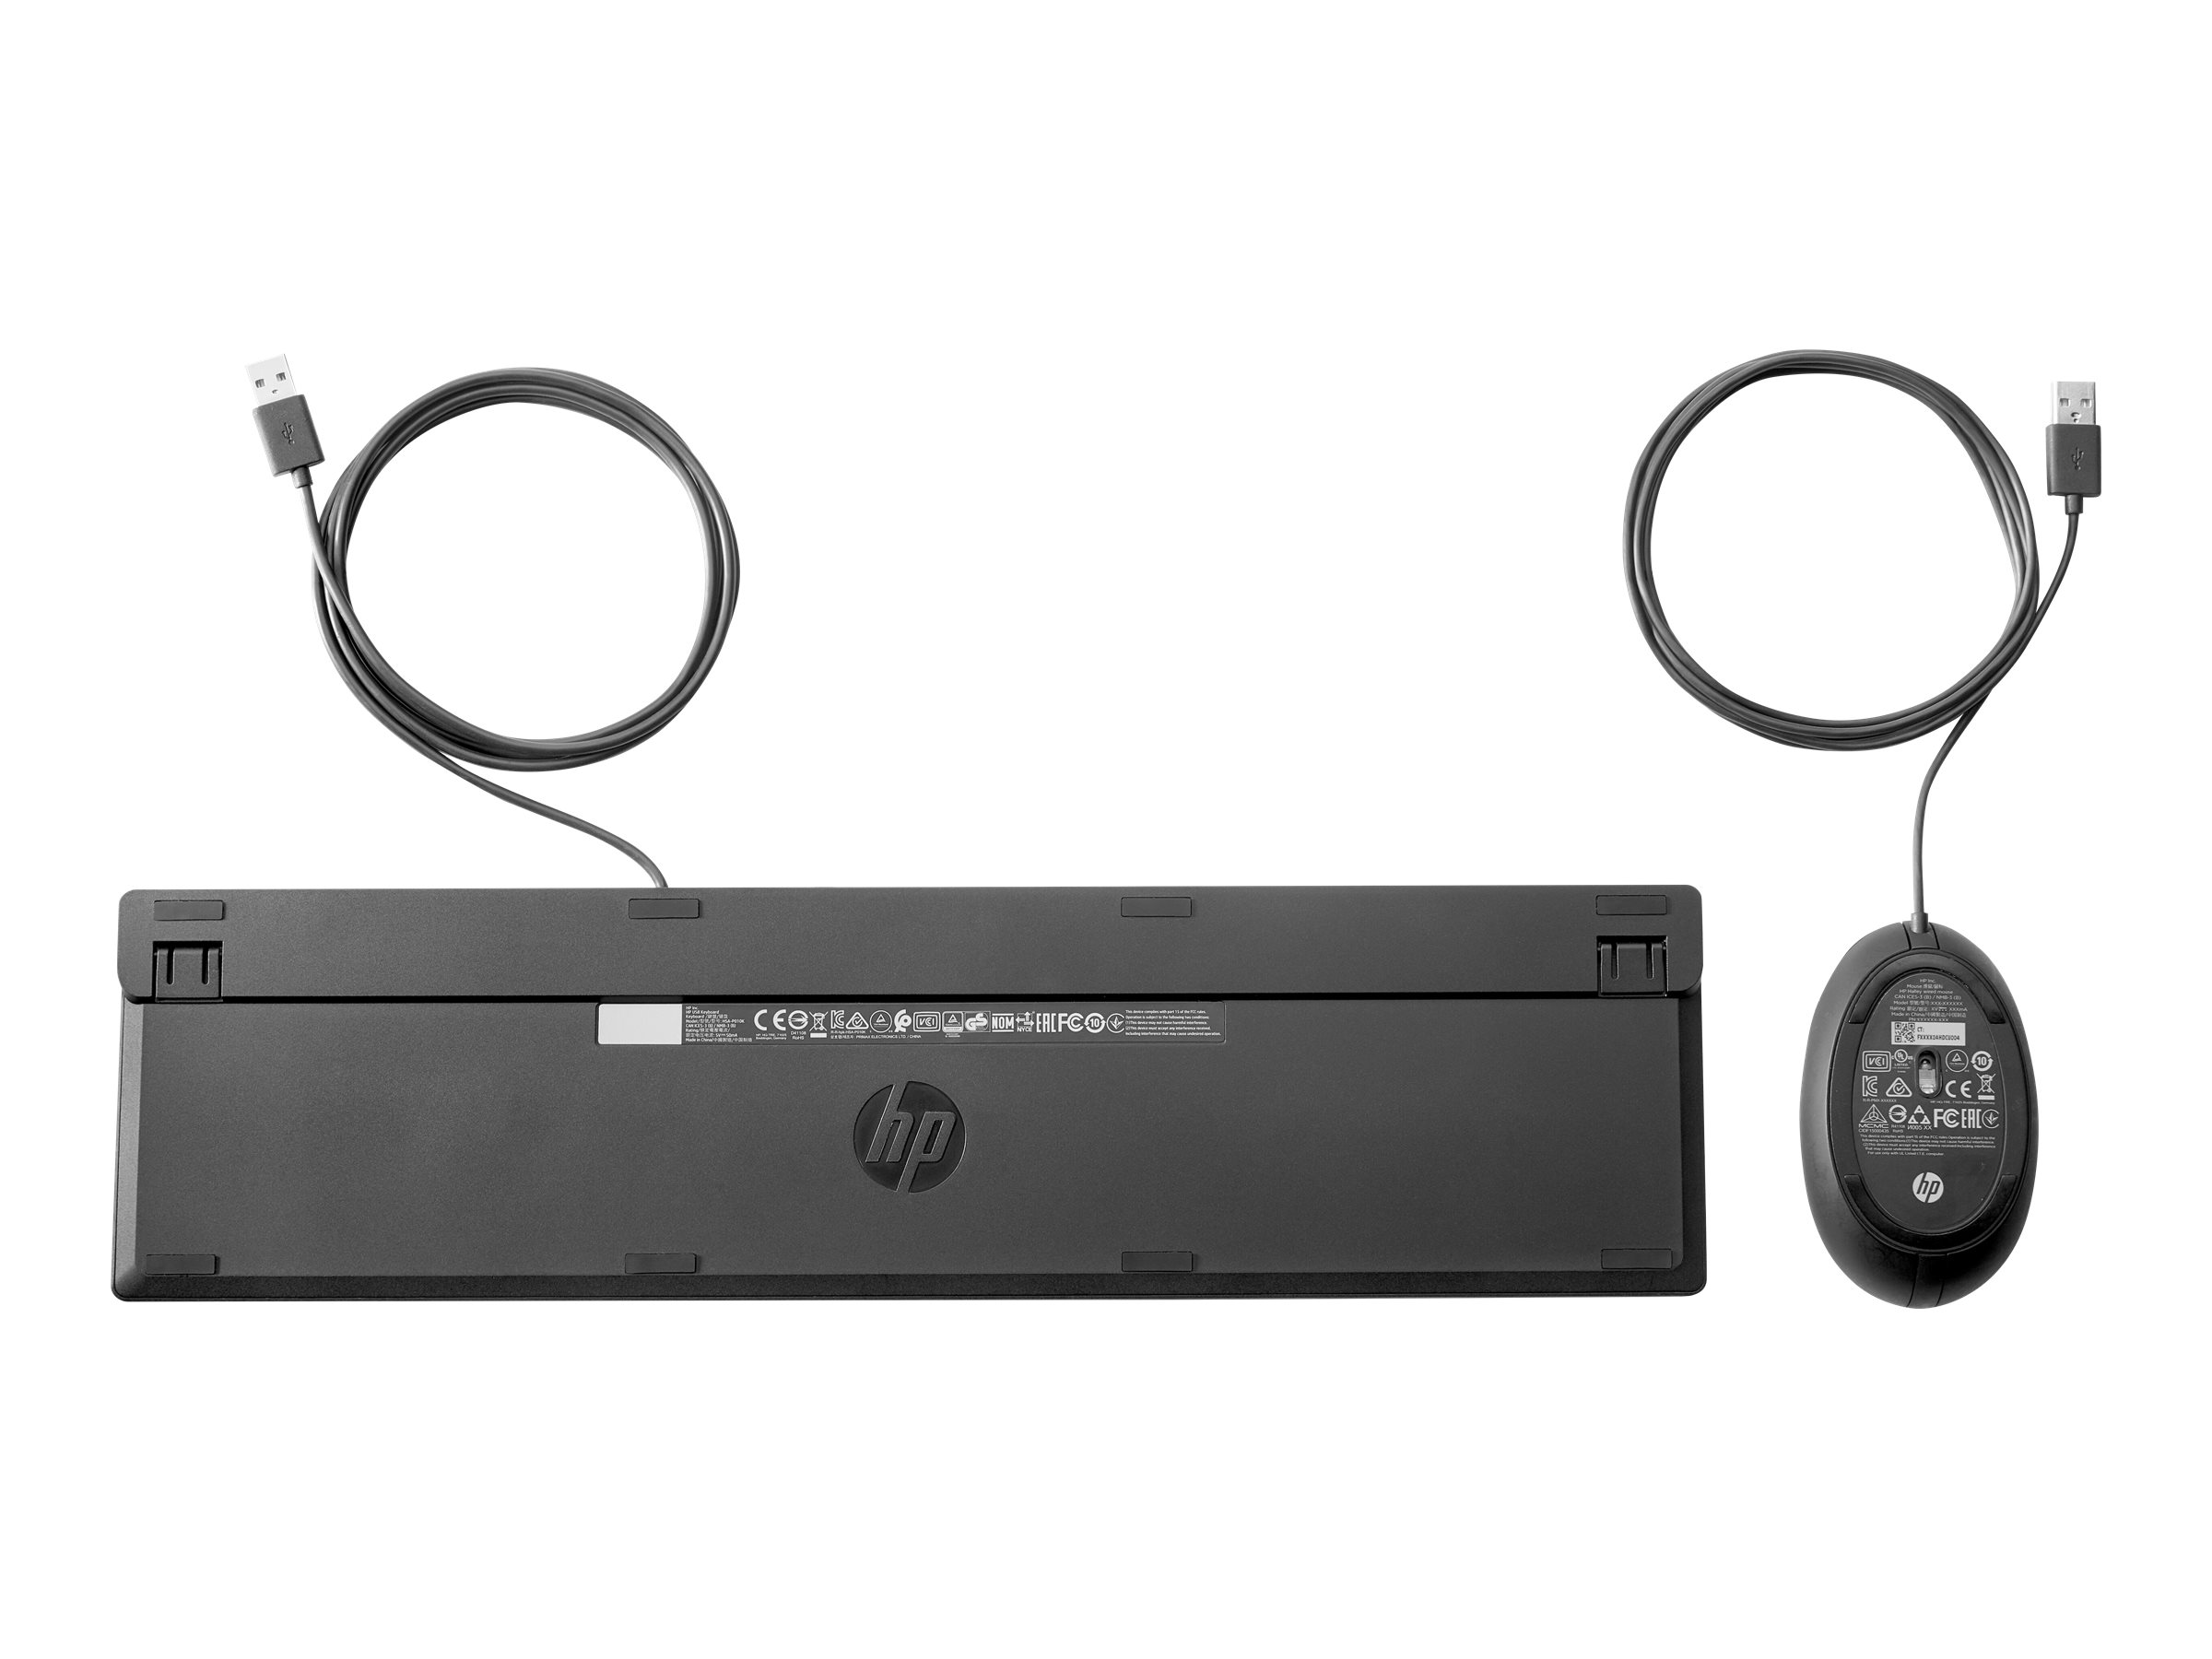 HP Desktop 320MK - keyboard and mouse set